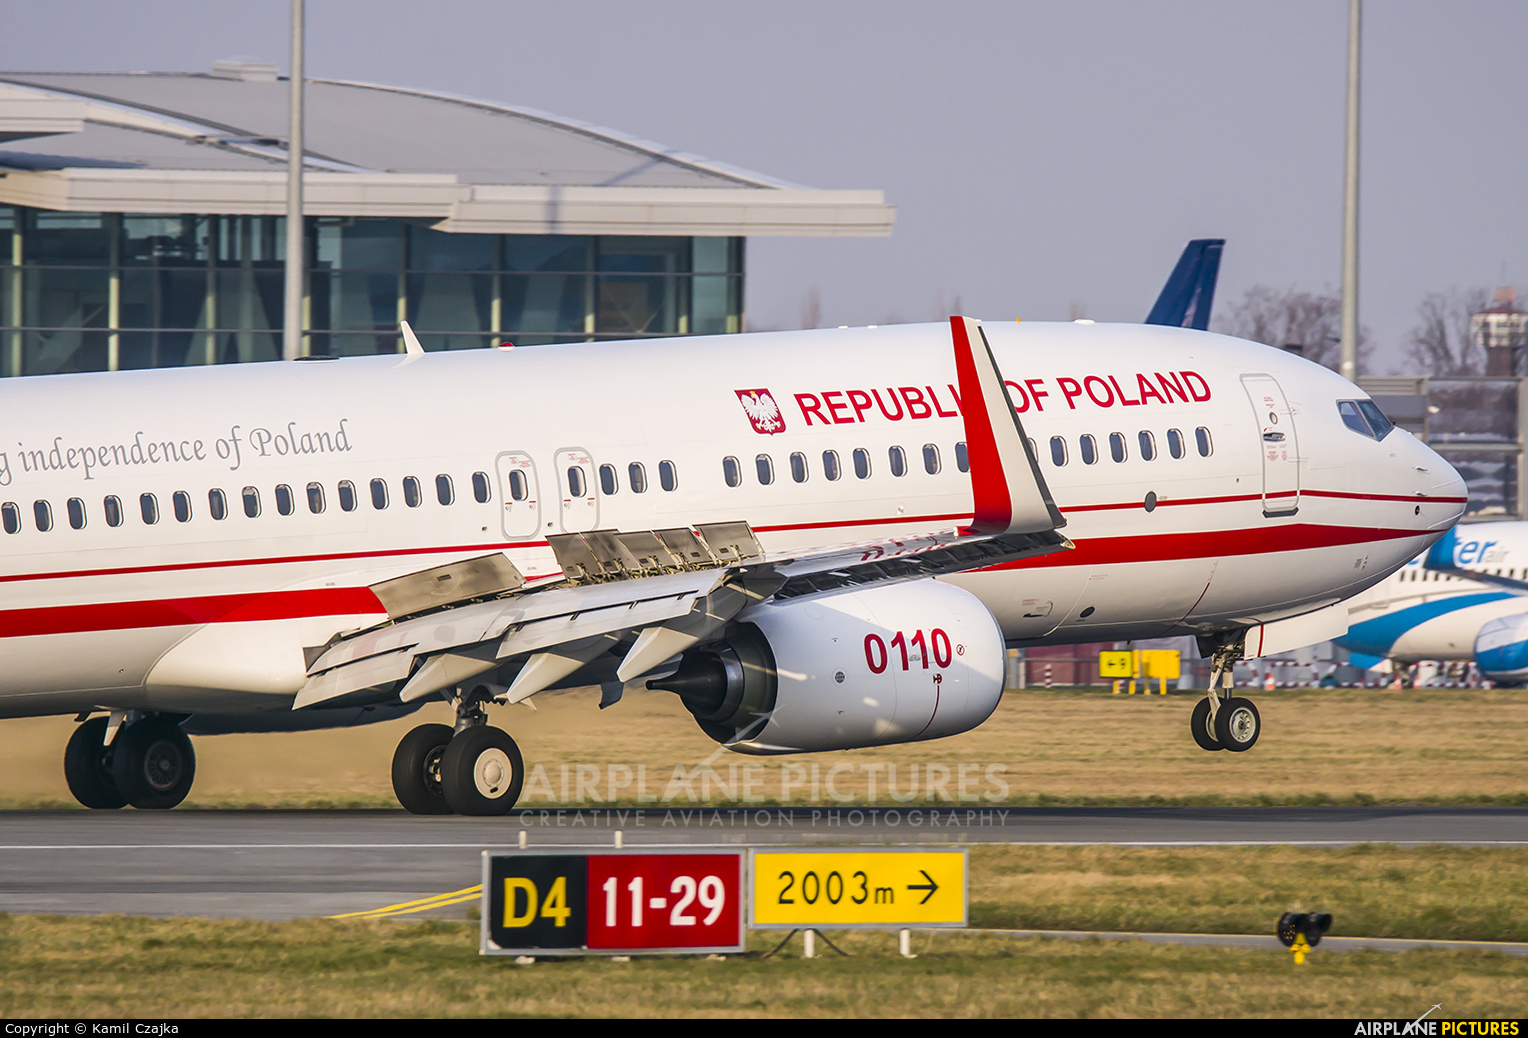 Poland - Air Force 0110 aircraft at Wrocław - Copernicus